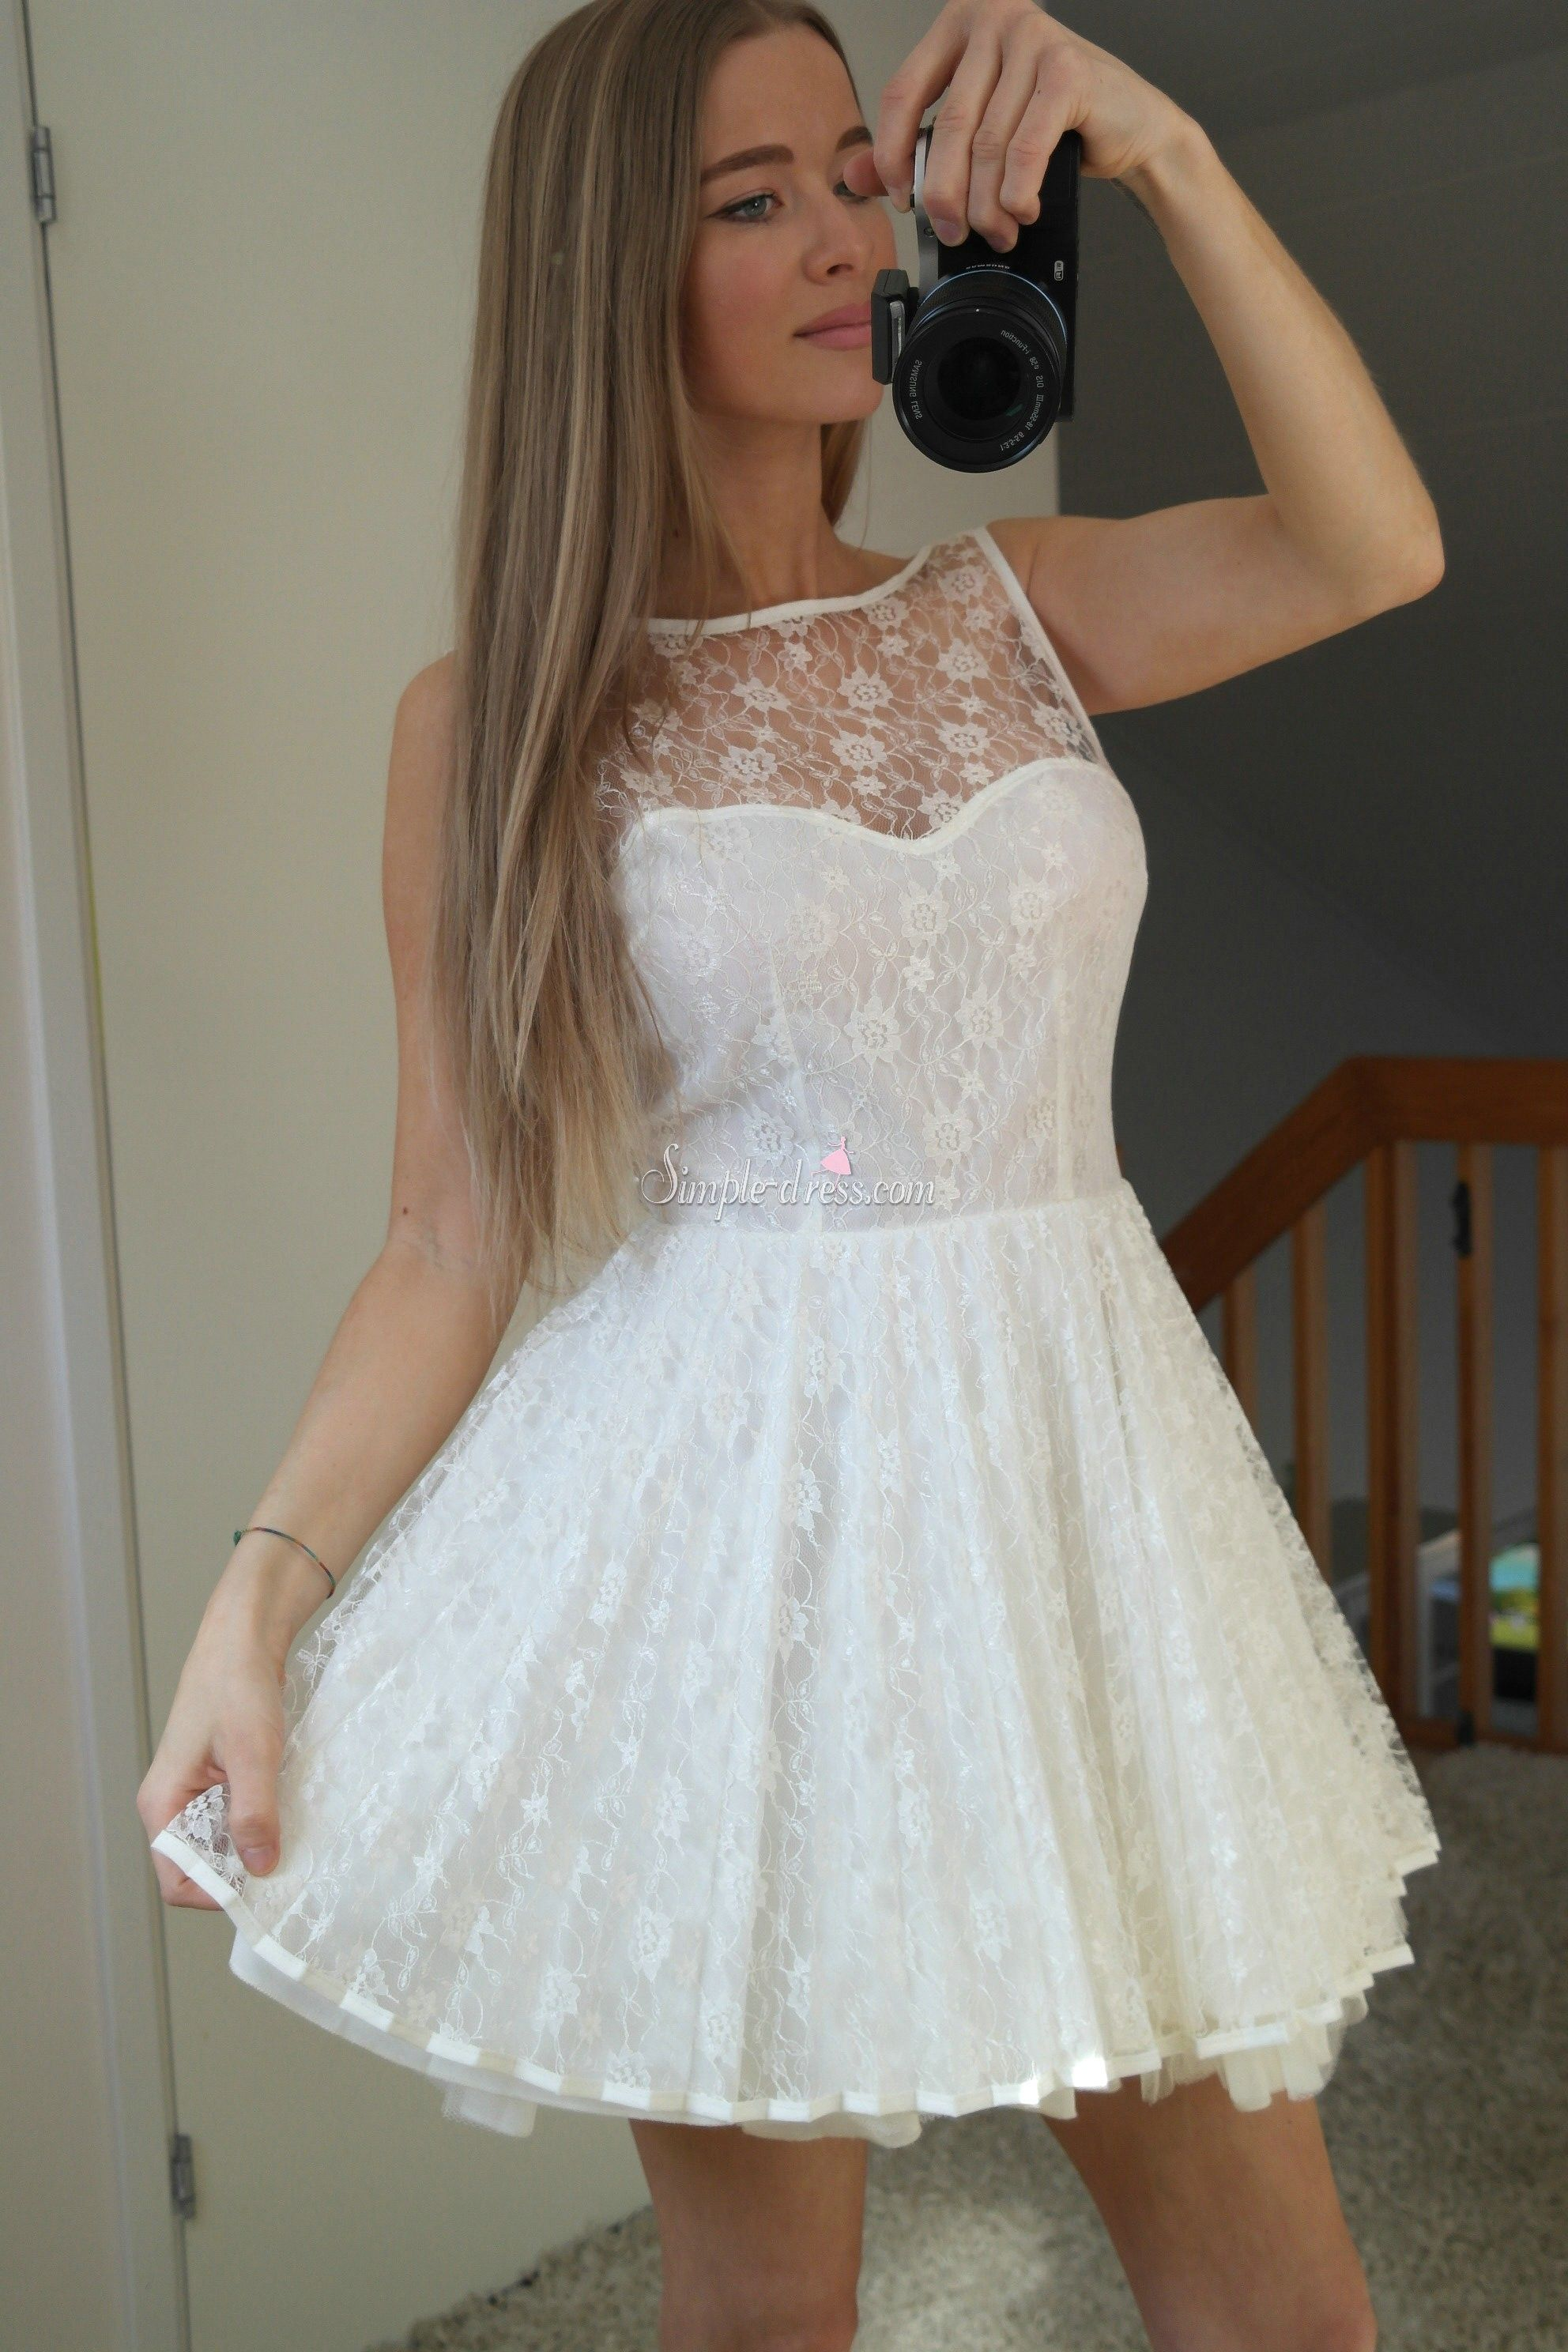 Simple-dress Pretty Short White Lace Short 2015 Homecoming ...